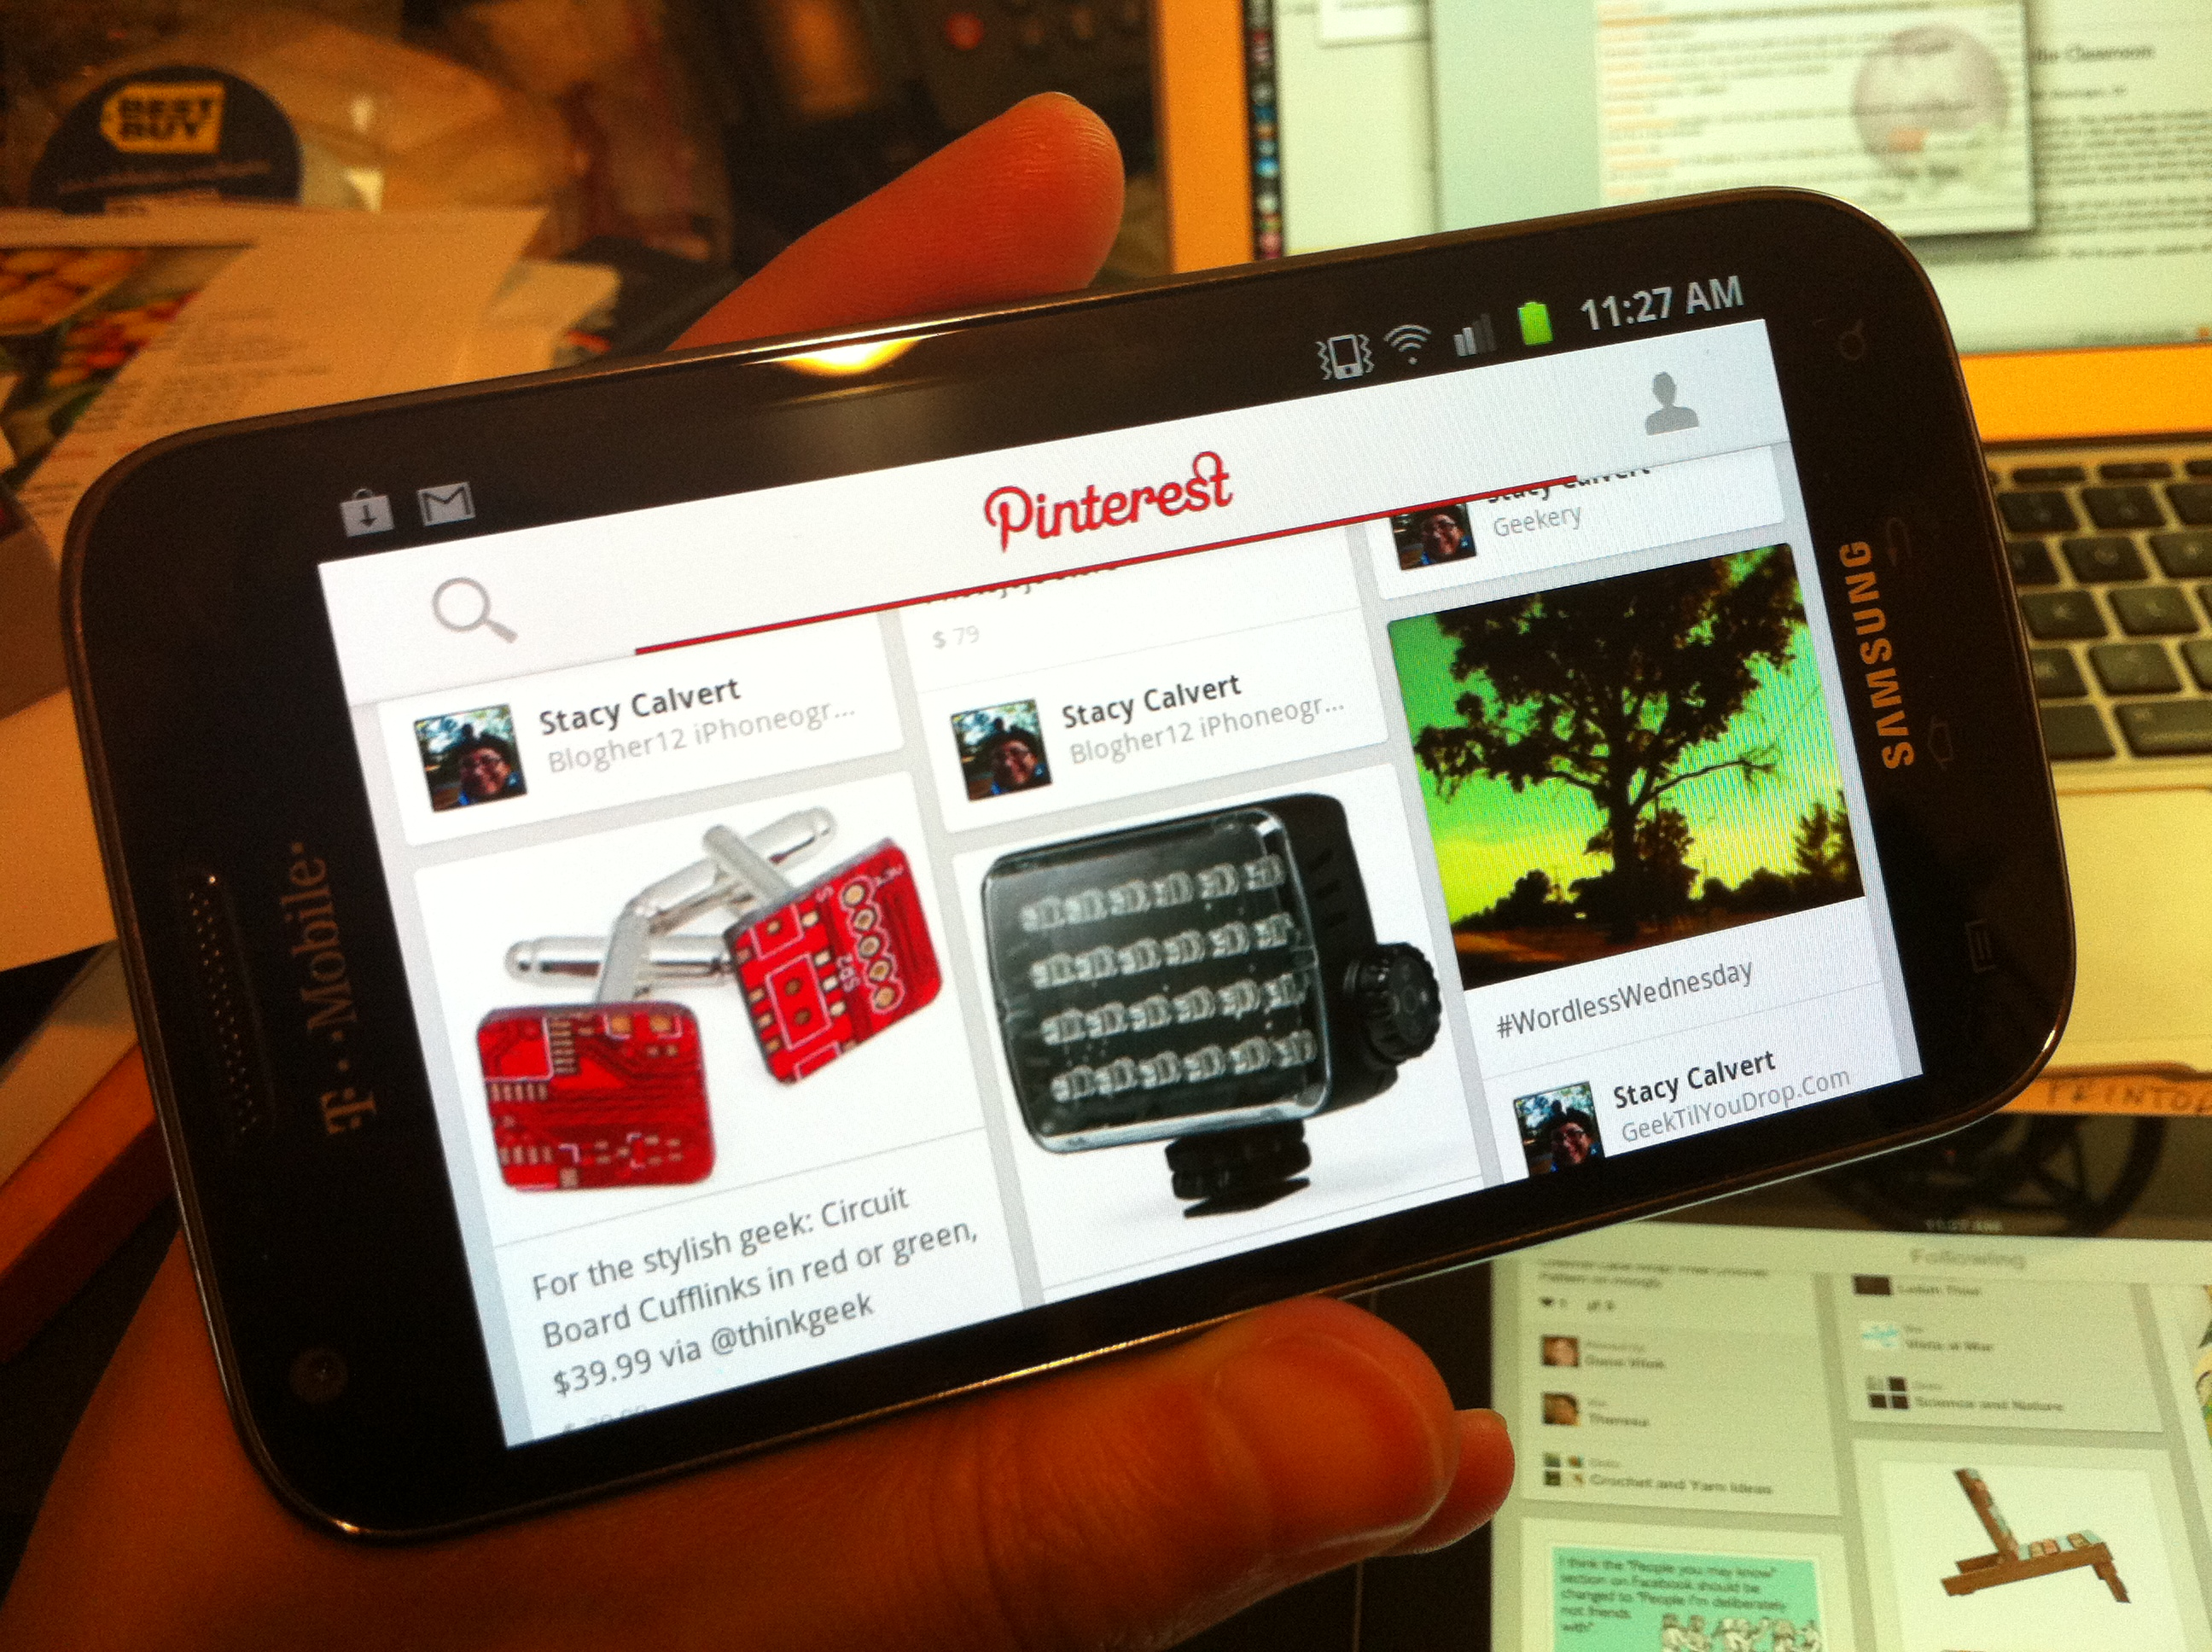 Hands-on: major Pinterest app update for iPhone, iPad, Android | Ars